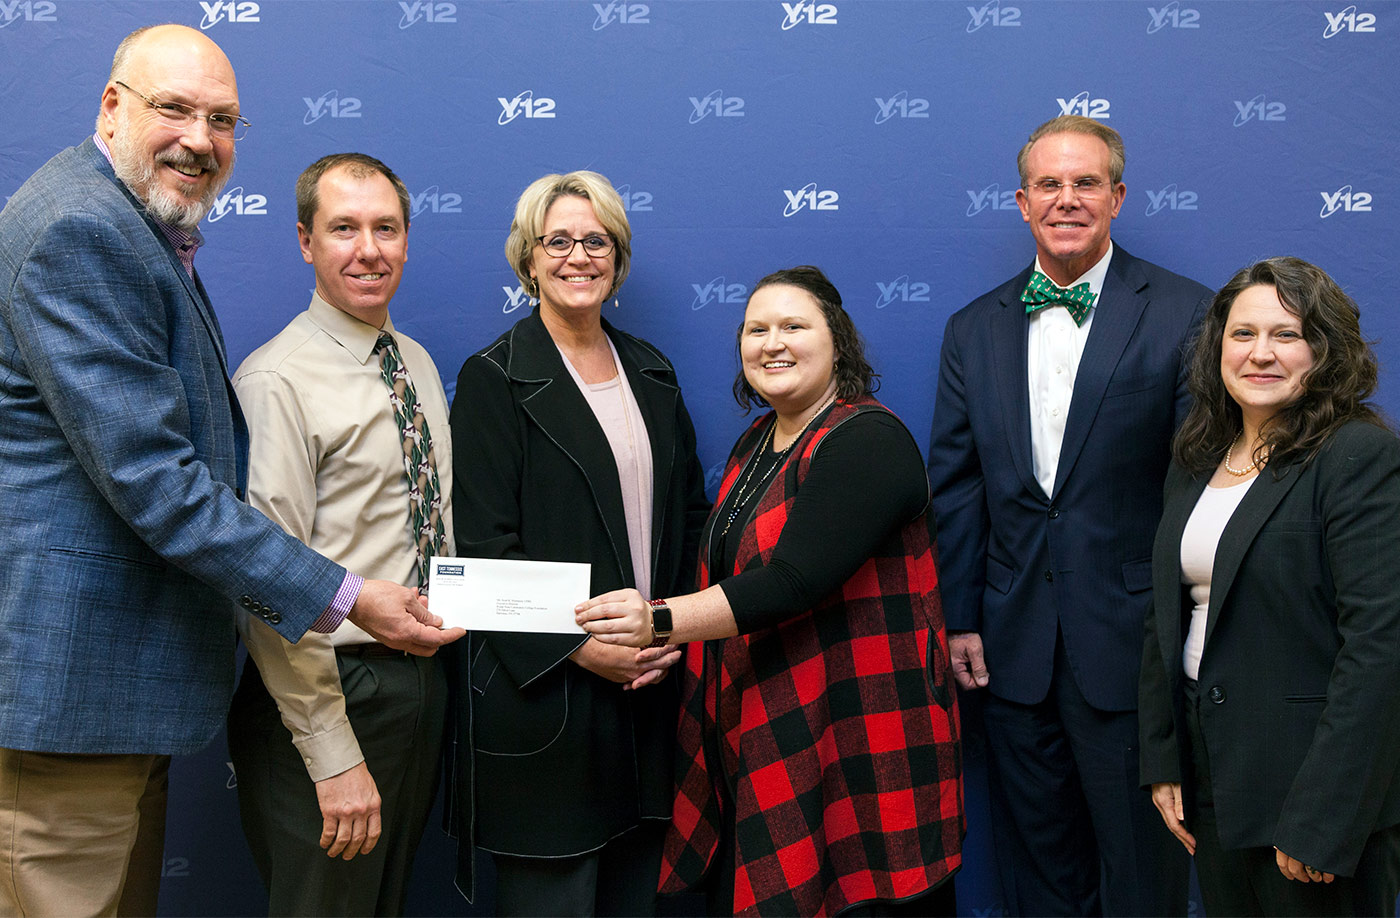 Making the grant presentation, from left: Robert Keen, chair of the Y-12 Employment Investment Advisory Committee; Scott Niermann, executive director of the Roane State Foundation; Teresa Duncan, Roane State vice president of workforce development and director of the college's Oak Ridge Branch Campus; Meghan Lovelace, committee secretary; Mike McClamroch, East Tennessee Foundation president and CEO; and Amy Wilson, CNS senior director of transformation.